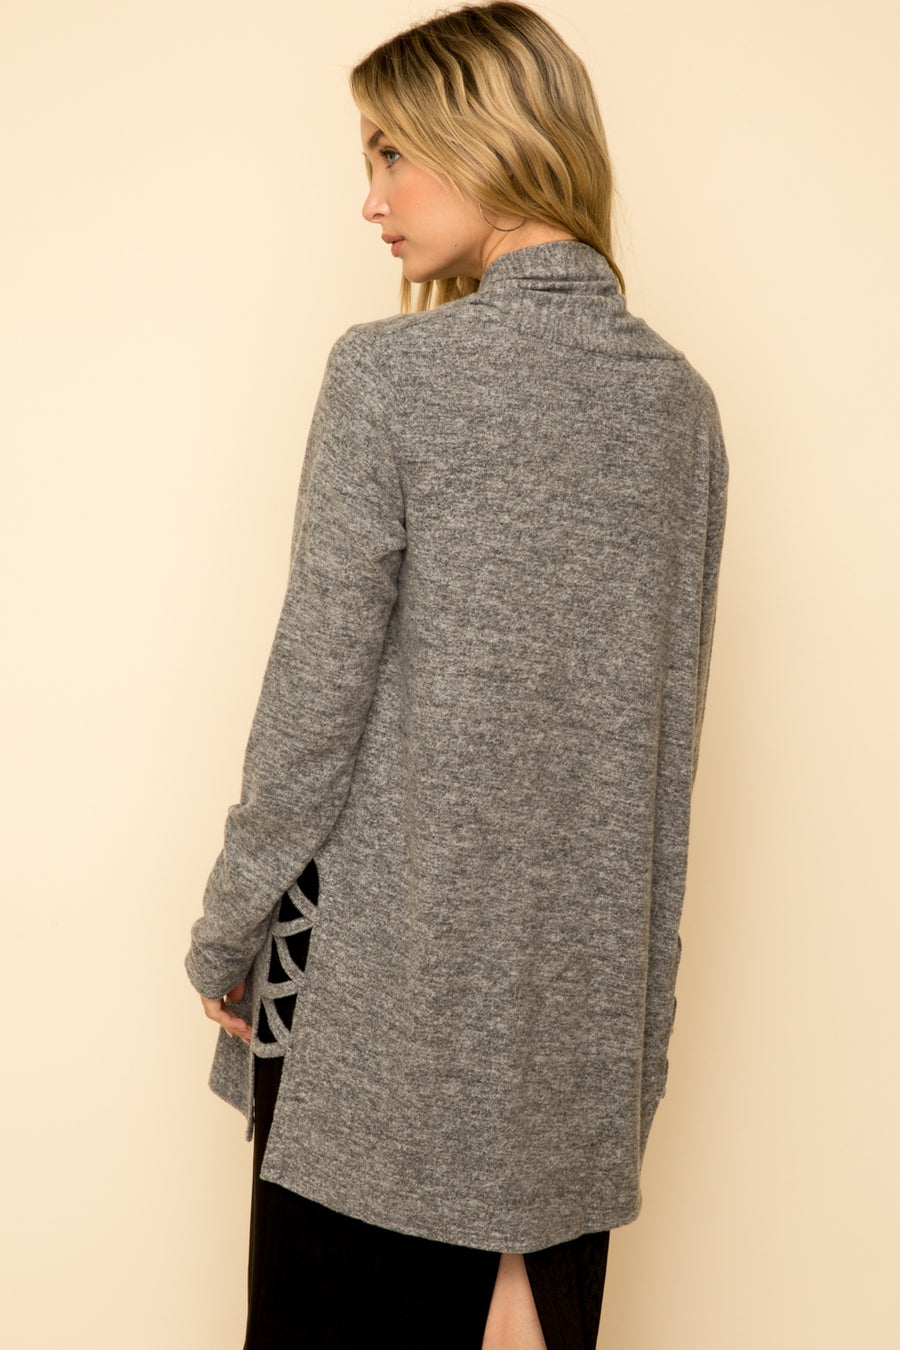 Lattice Brushed Cardigan